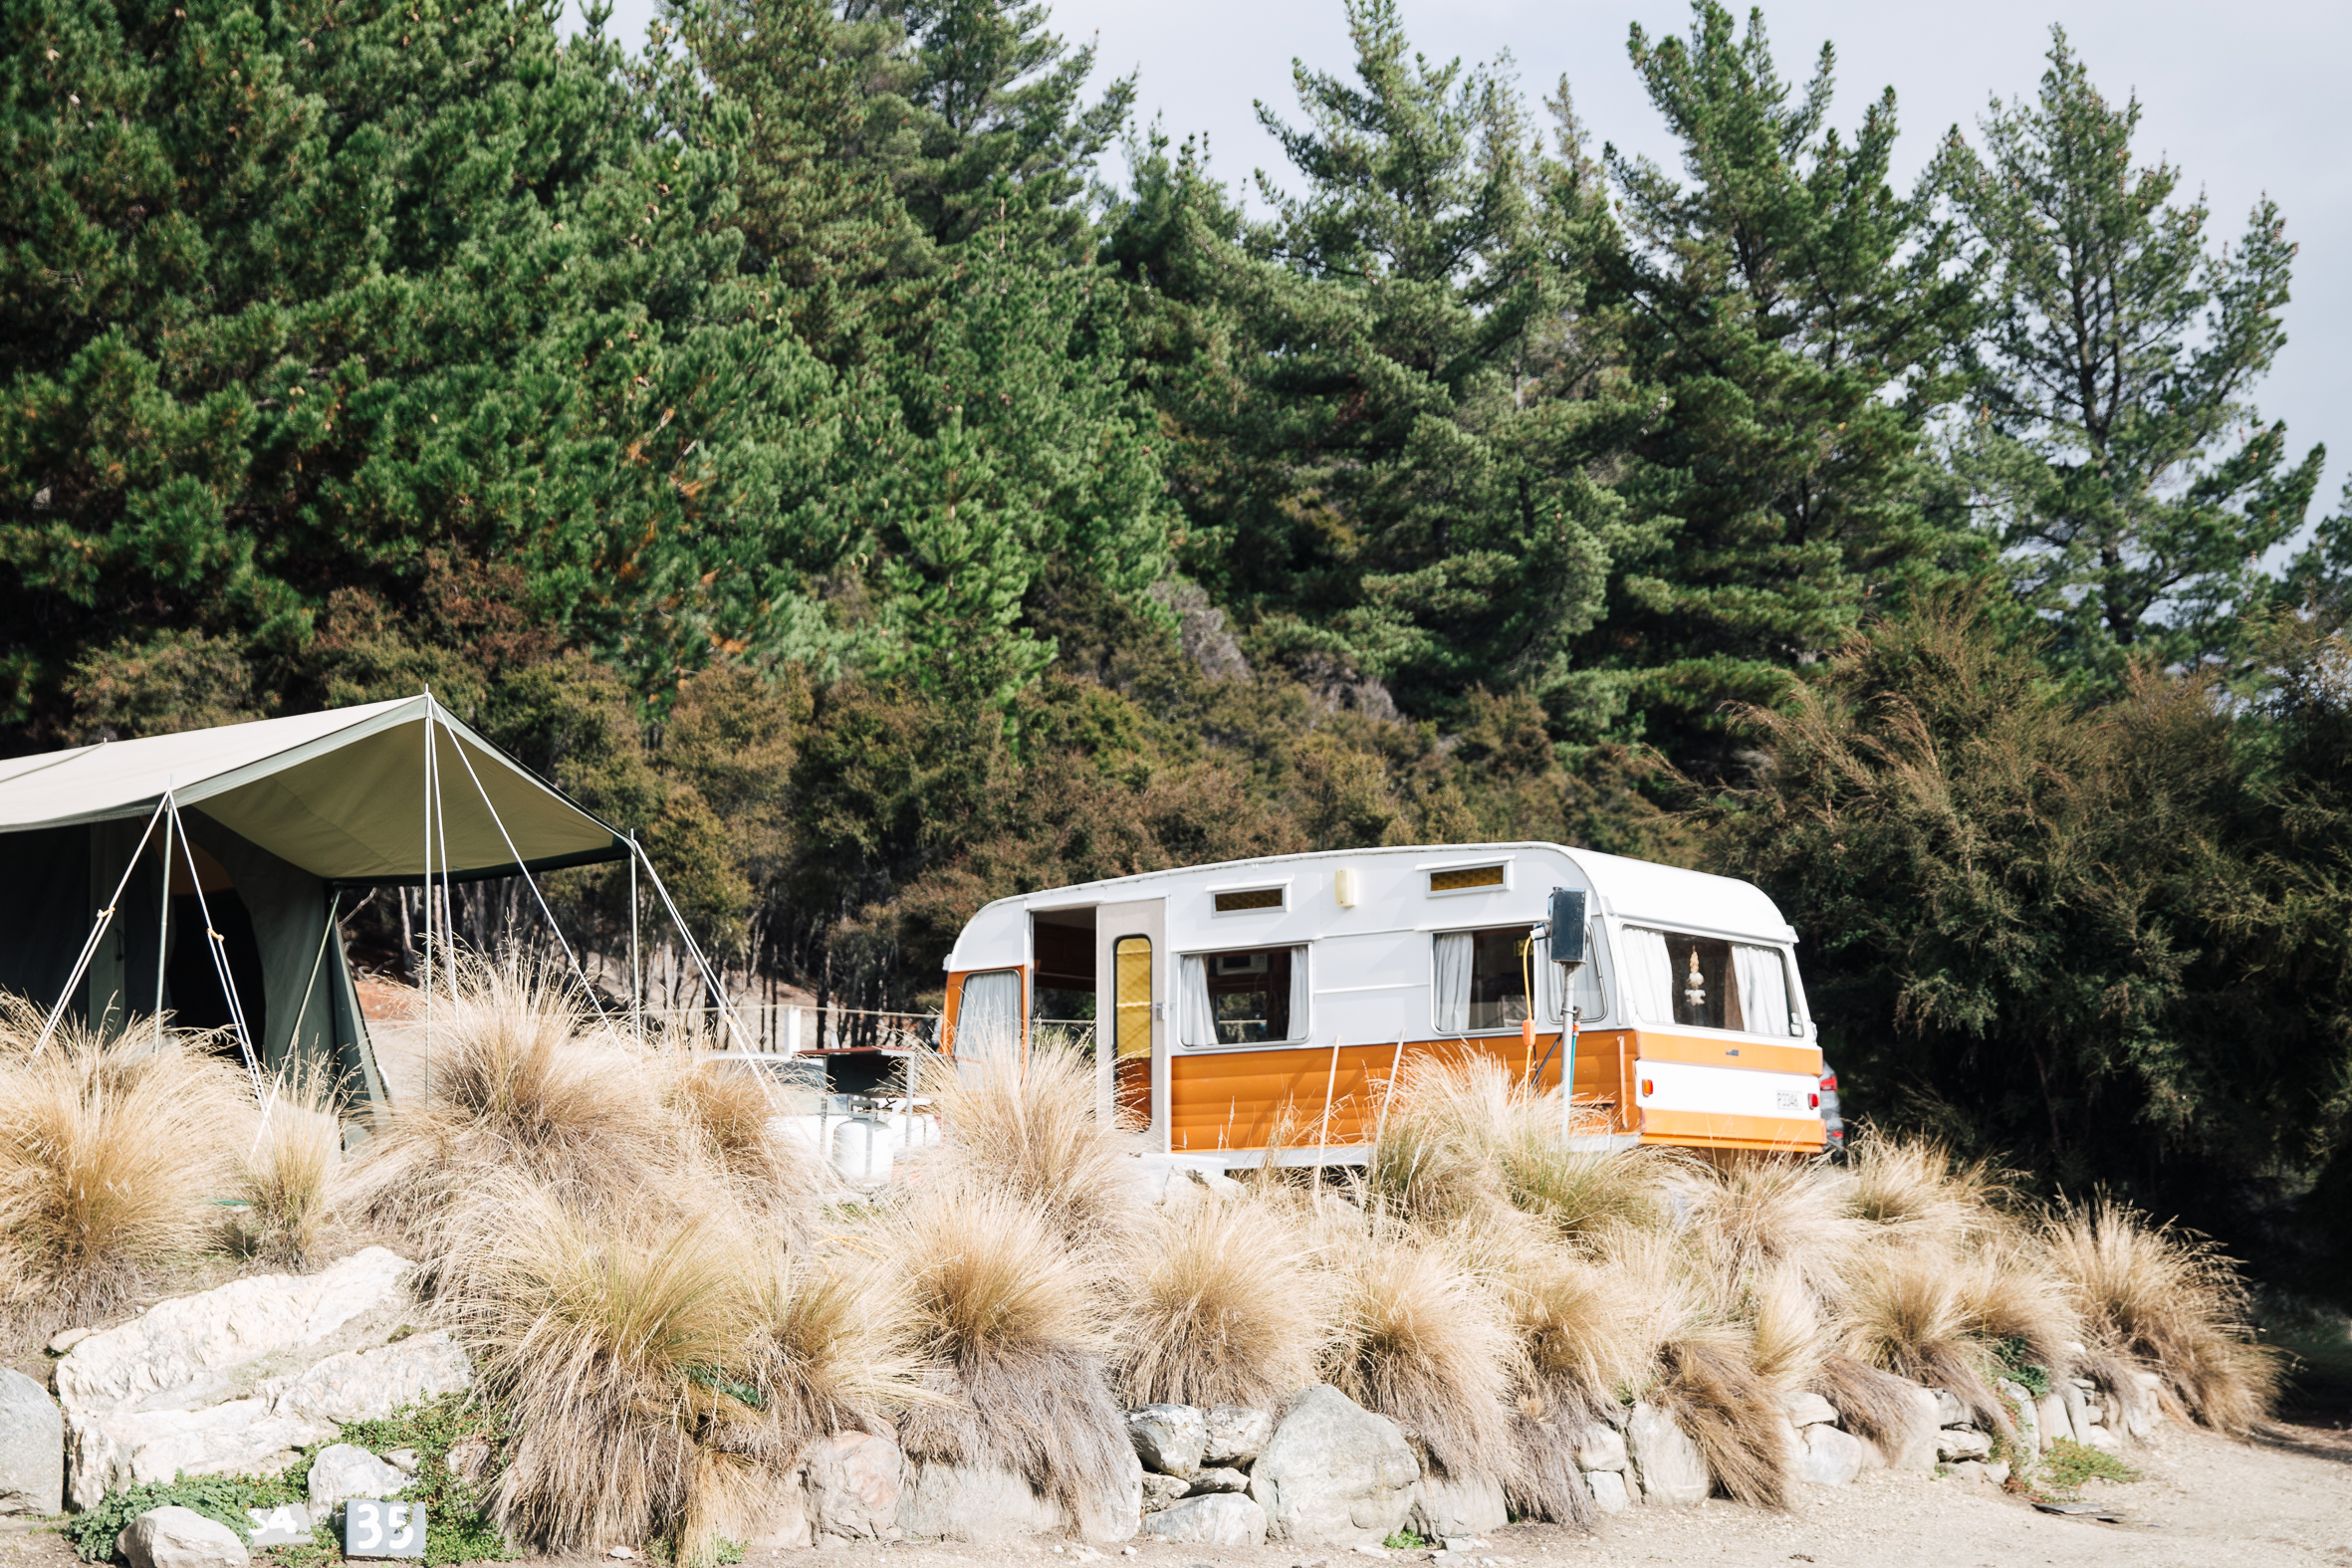 Gillian dreams of bondwood caravans and Annabelle digs up some caravan photos from her camping trip to New Zealand